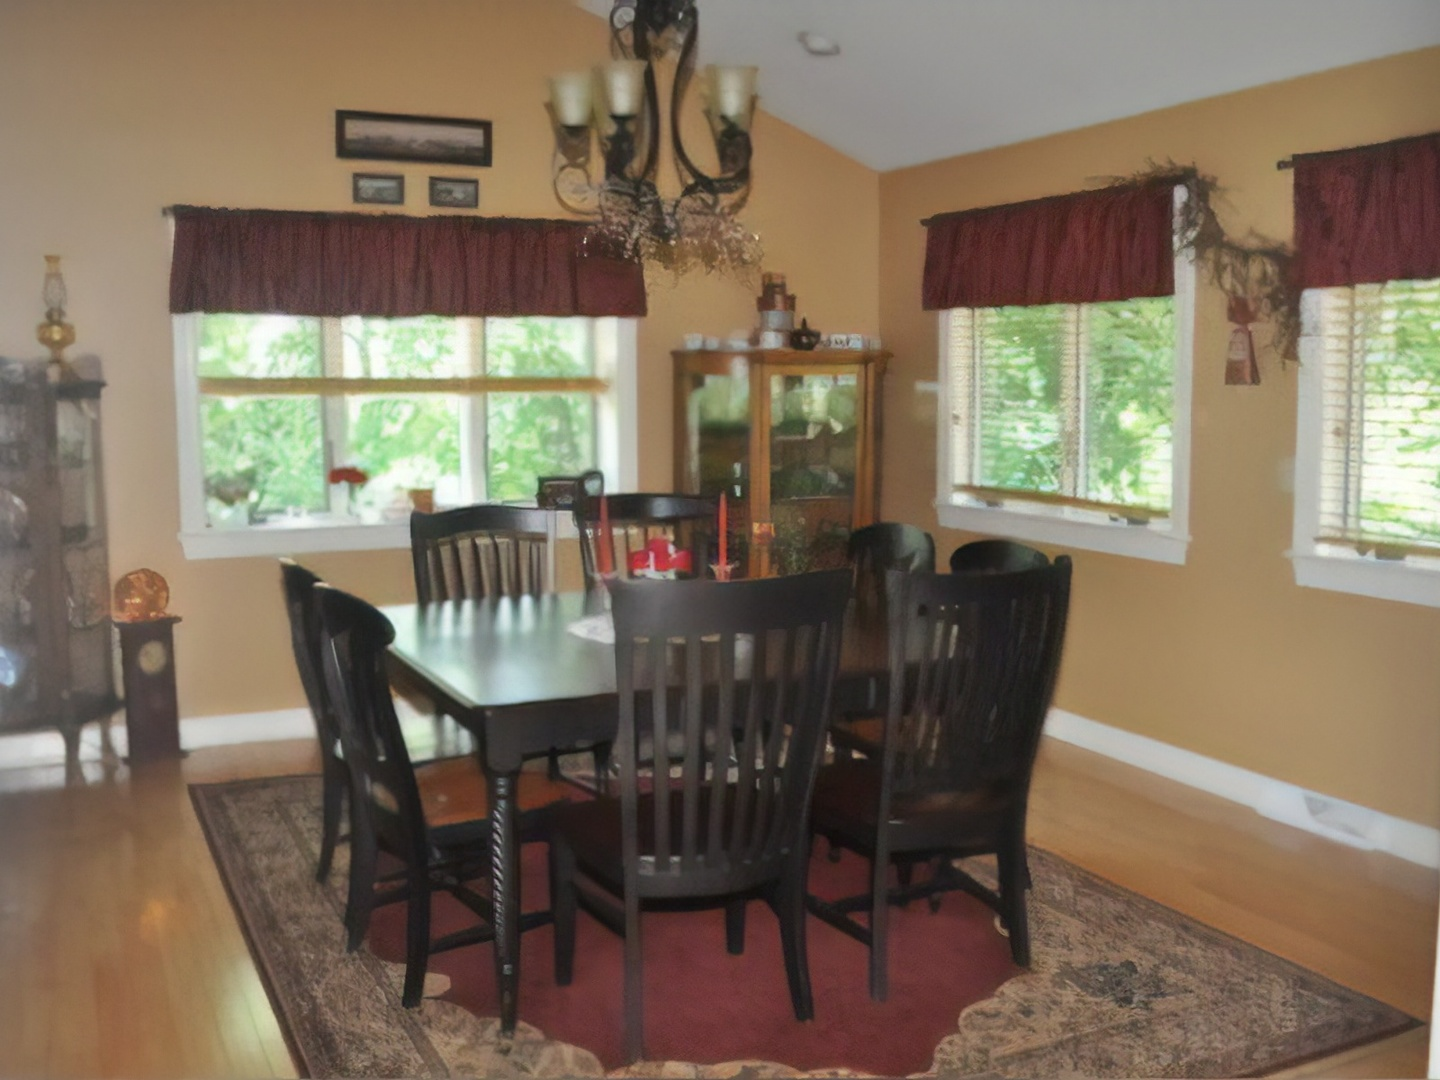 A dining room table at Hammer Creek Hideaway Bed & Breakfast.